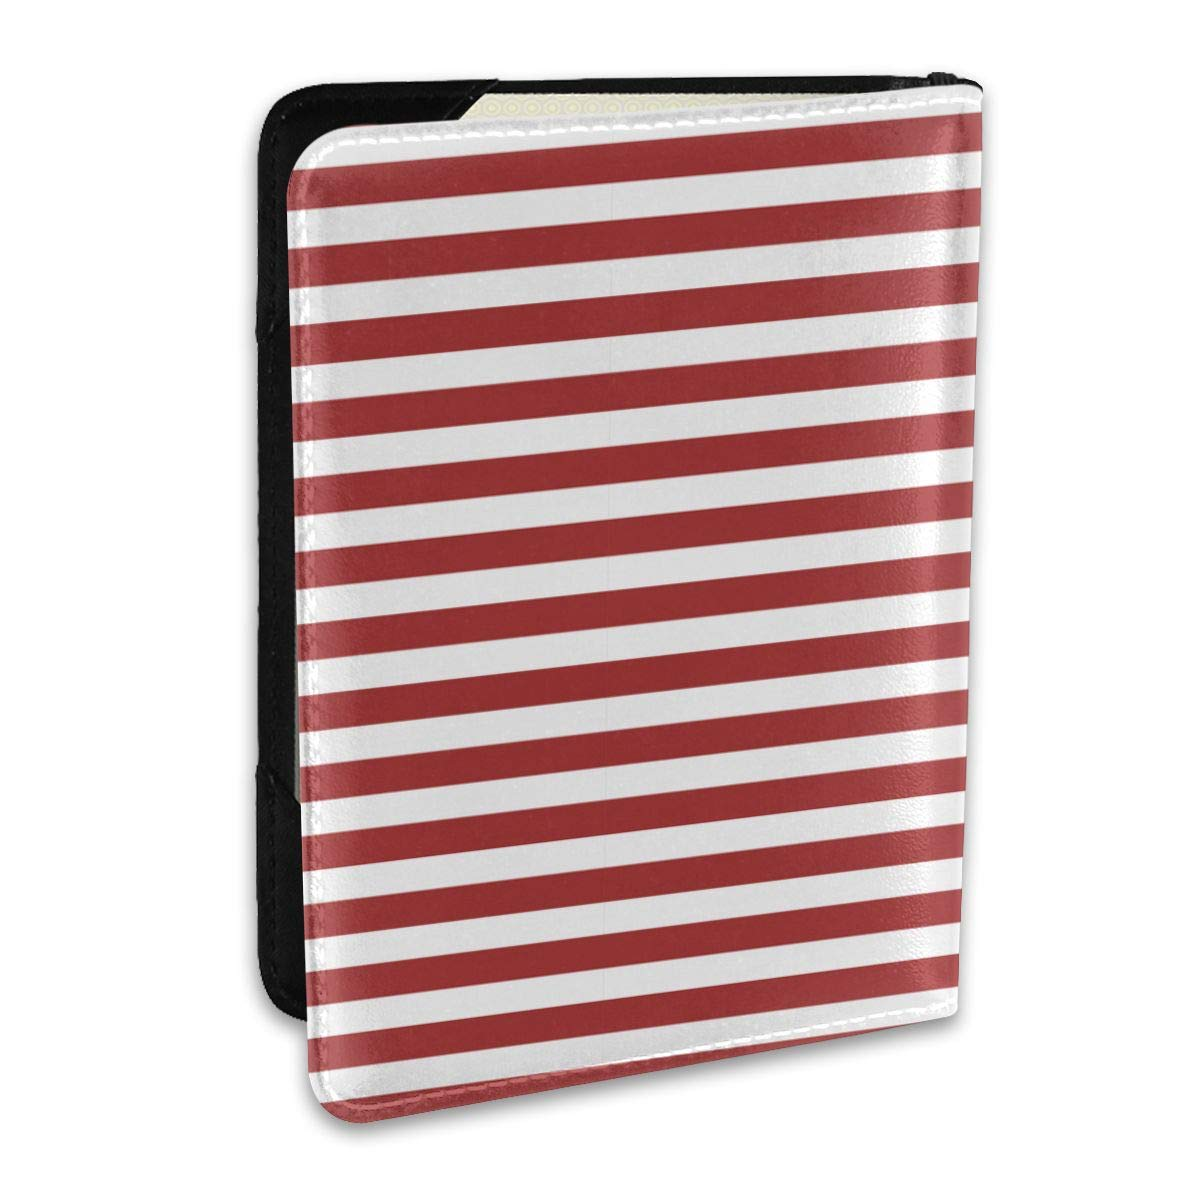 /è/‰/²/æ/¡ Fashion Leather Passport Holder Cover Case Travel Wallet 6.5 In